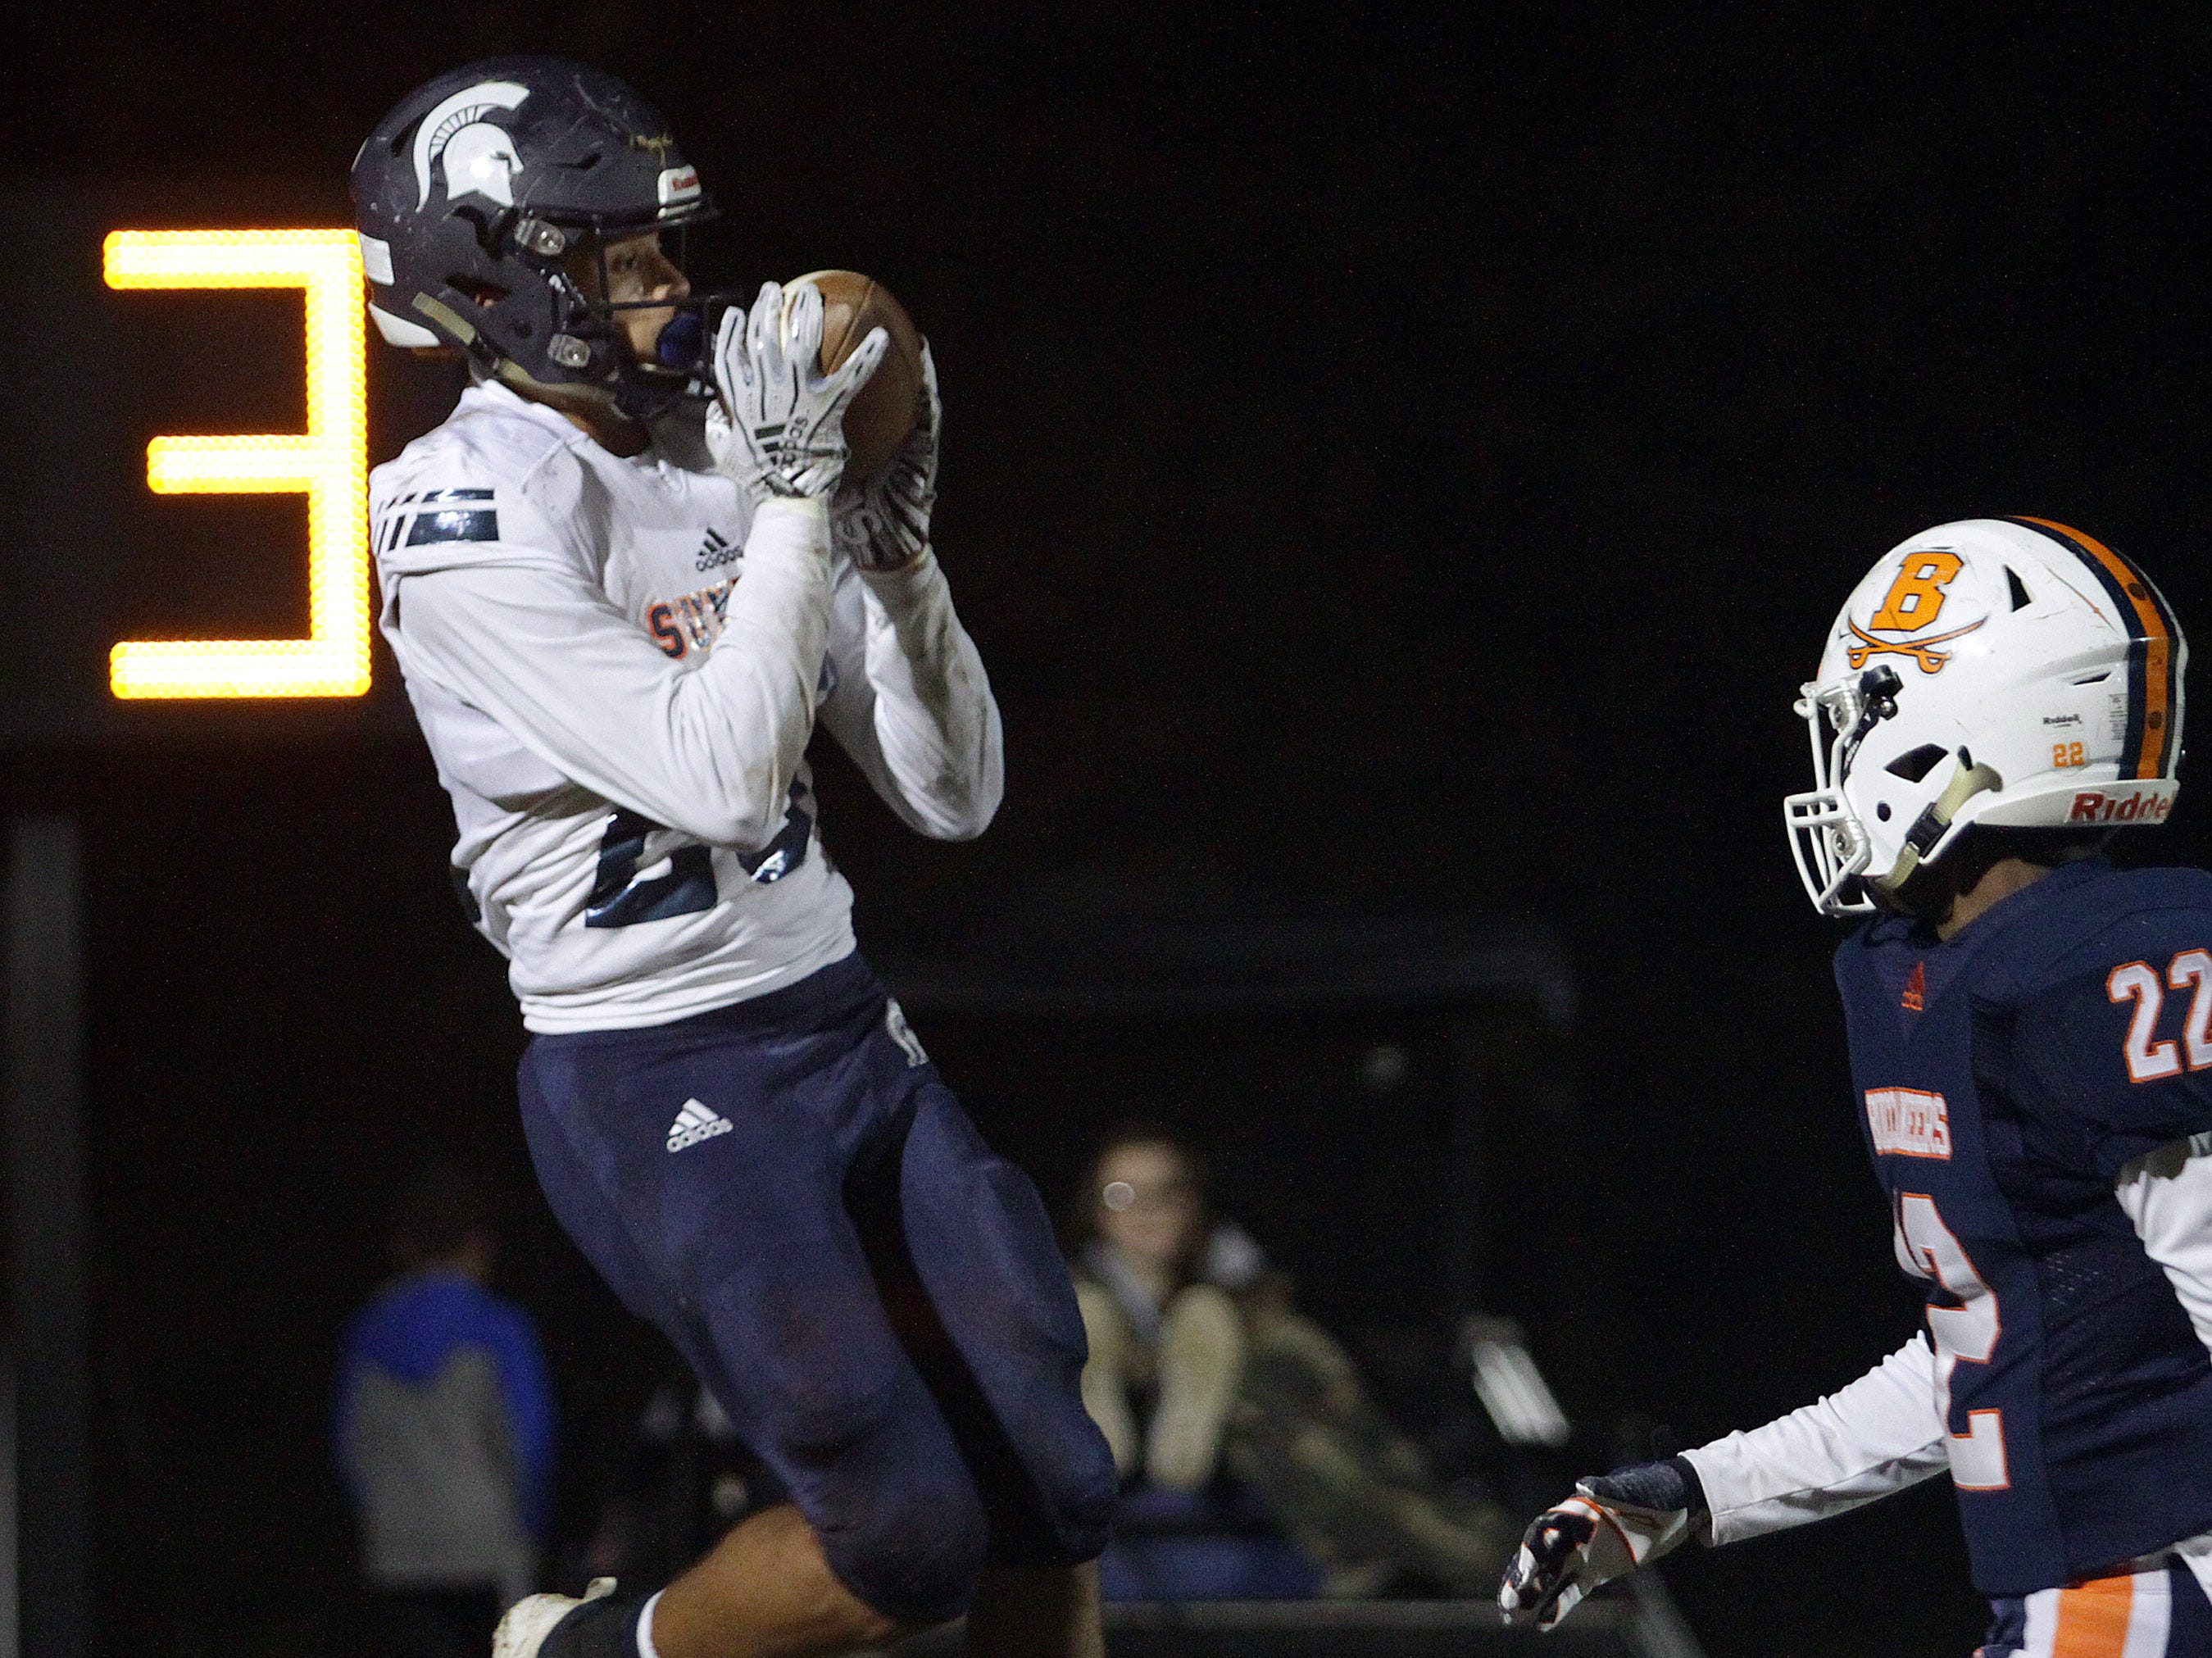 Summit's George Odimegwu catches a TD pass over Beech's Caleb Clayton on Friday, November 2, 2018.